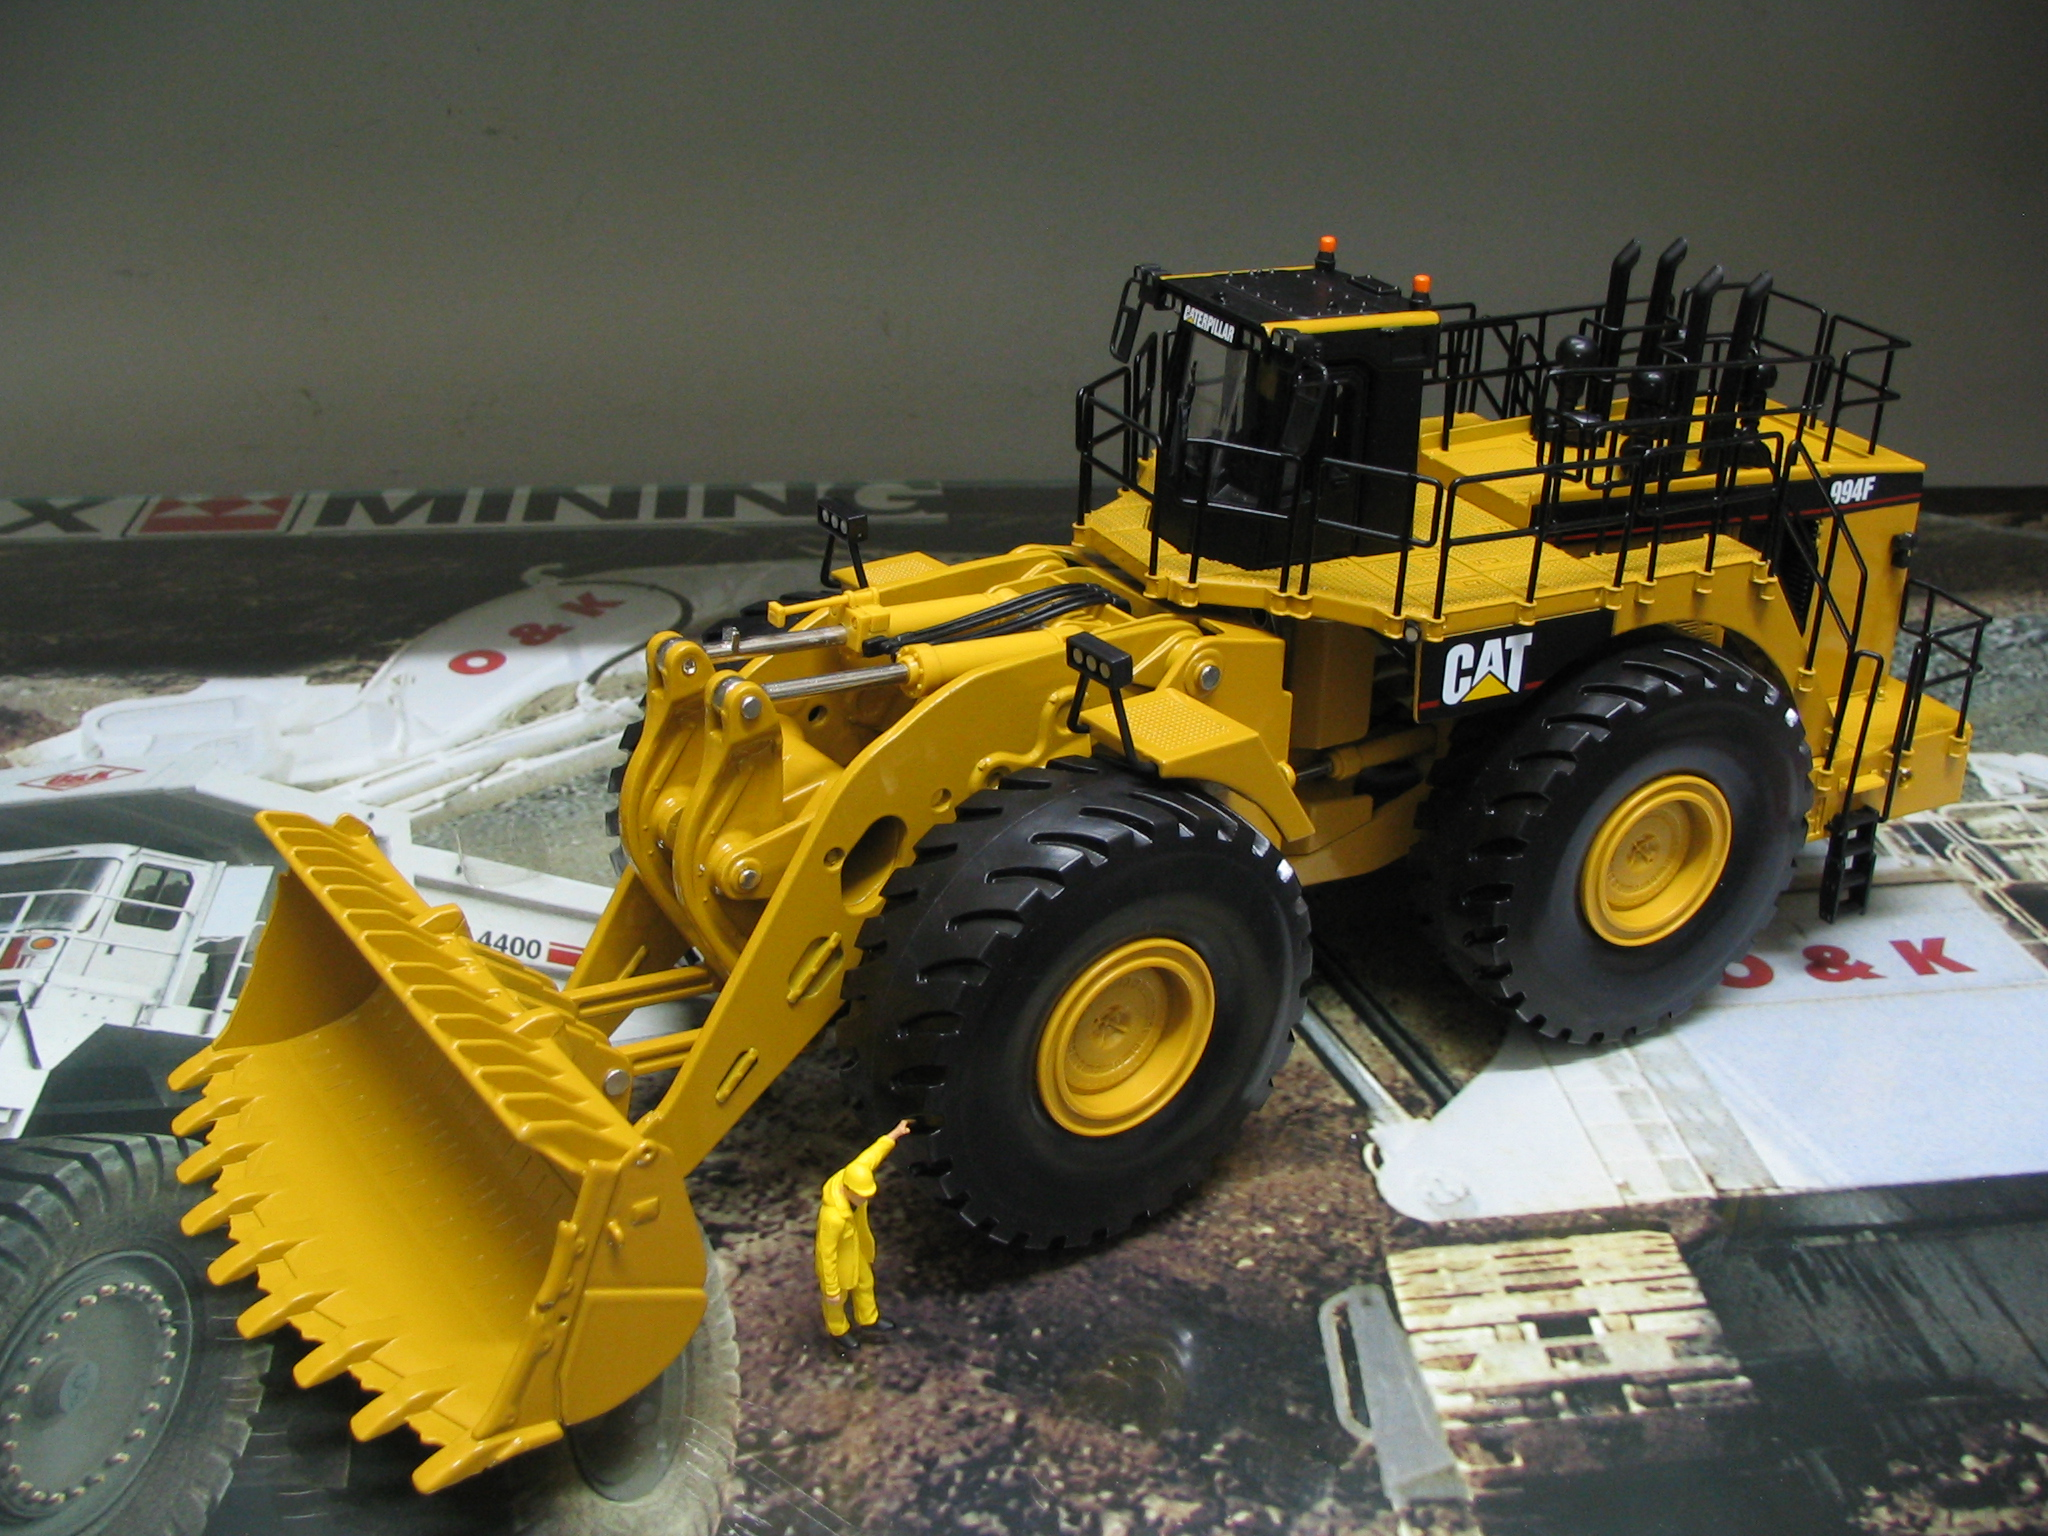 Caterpillar 980g photo - 1